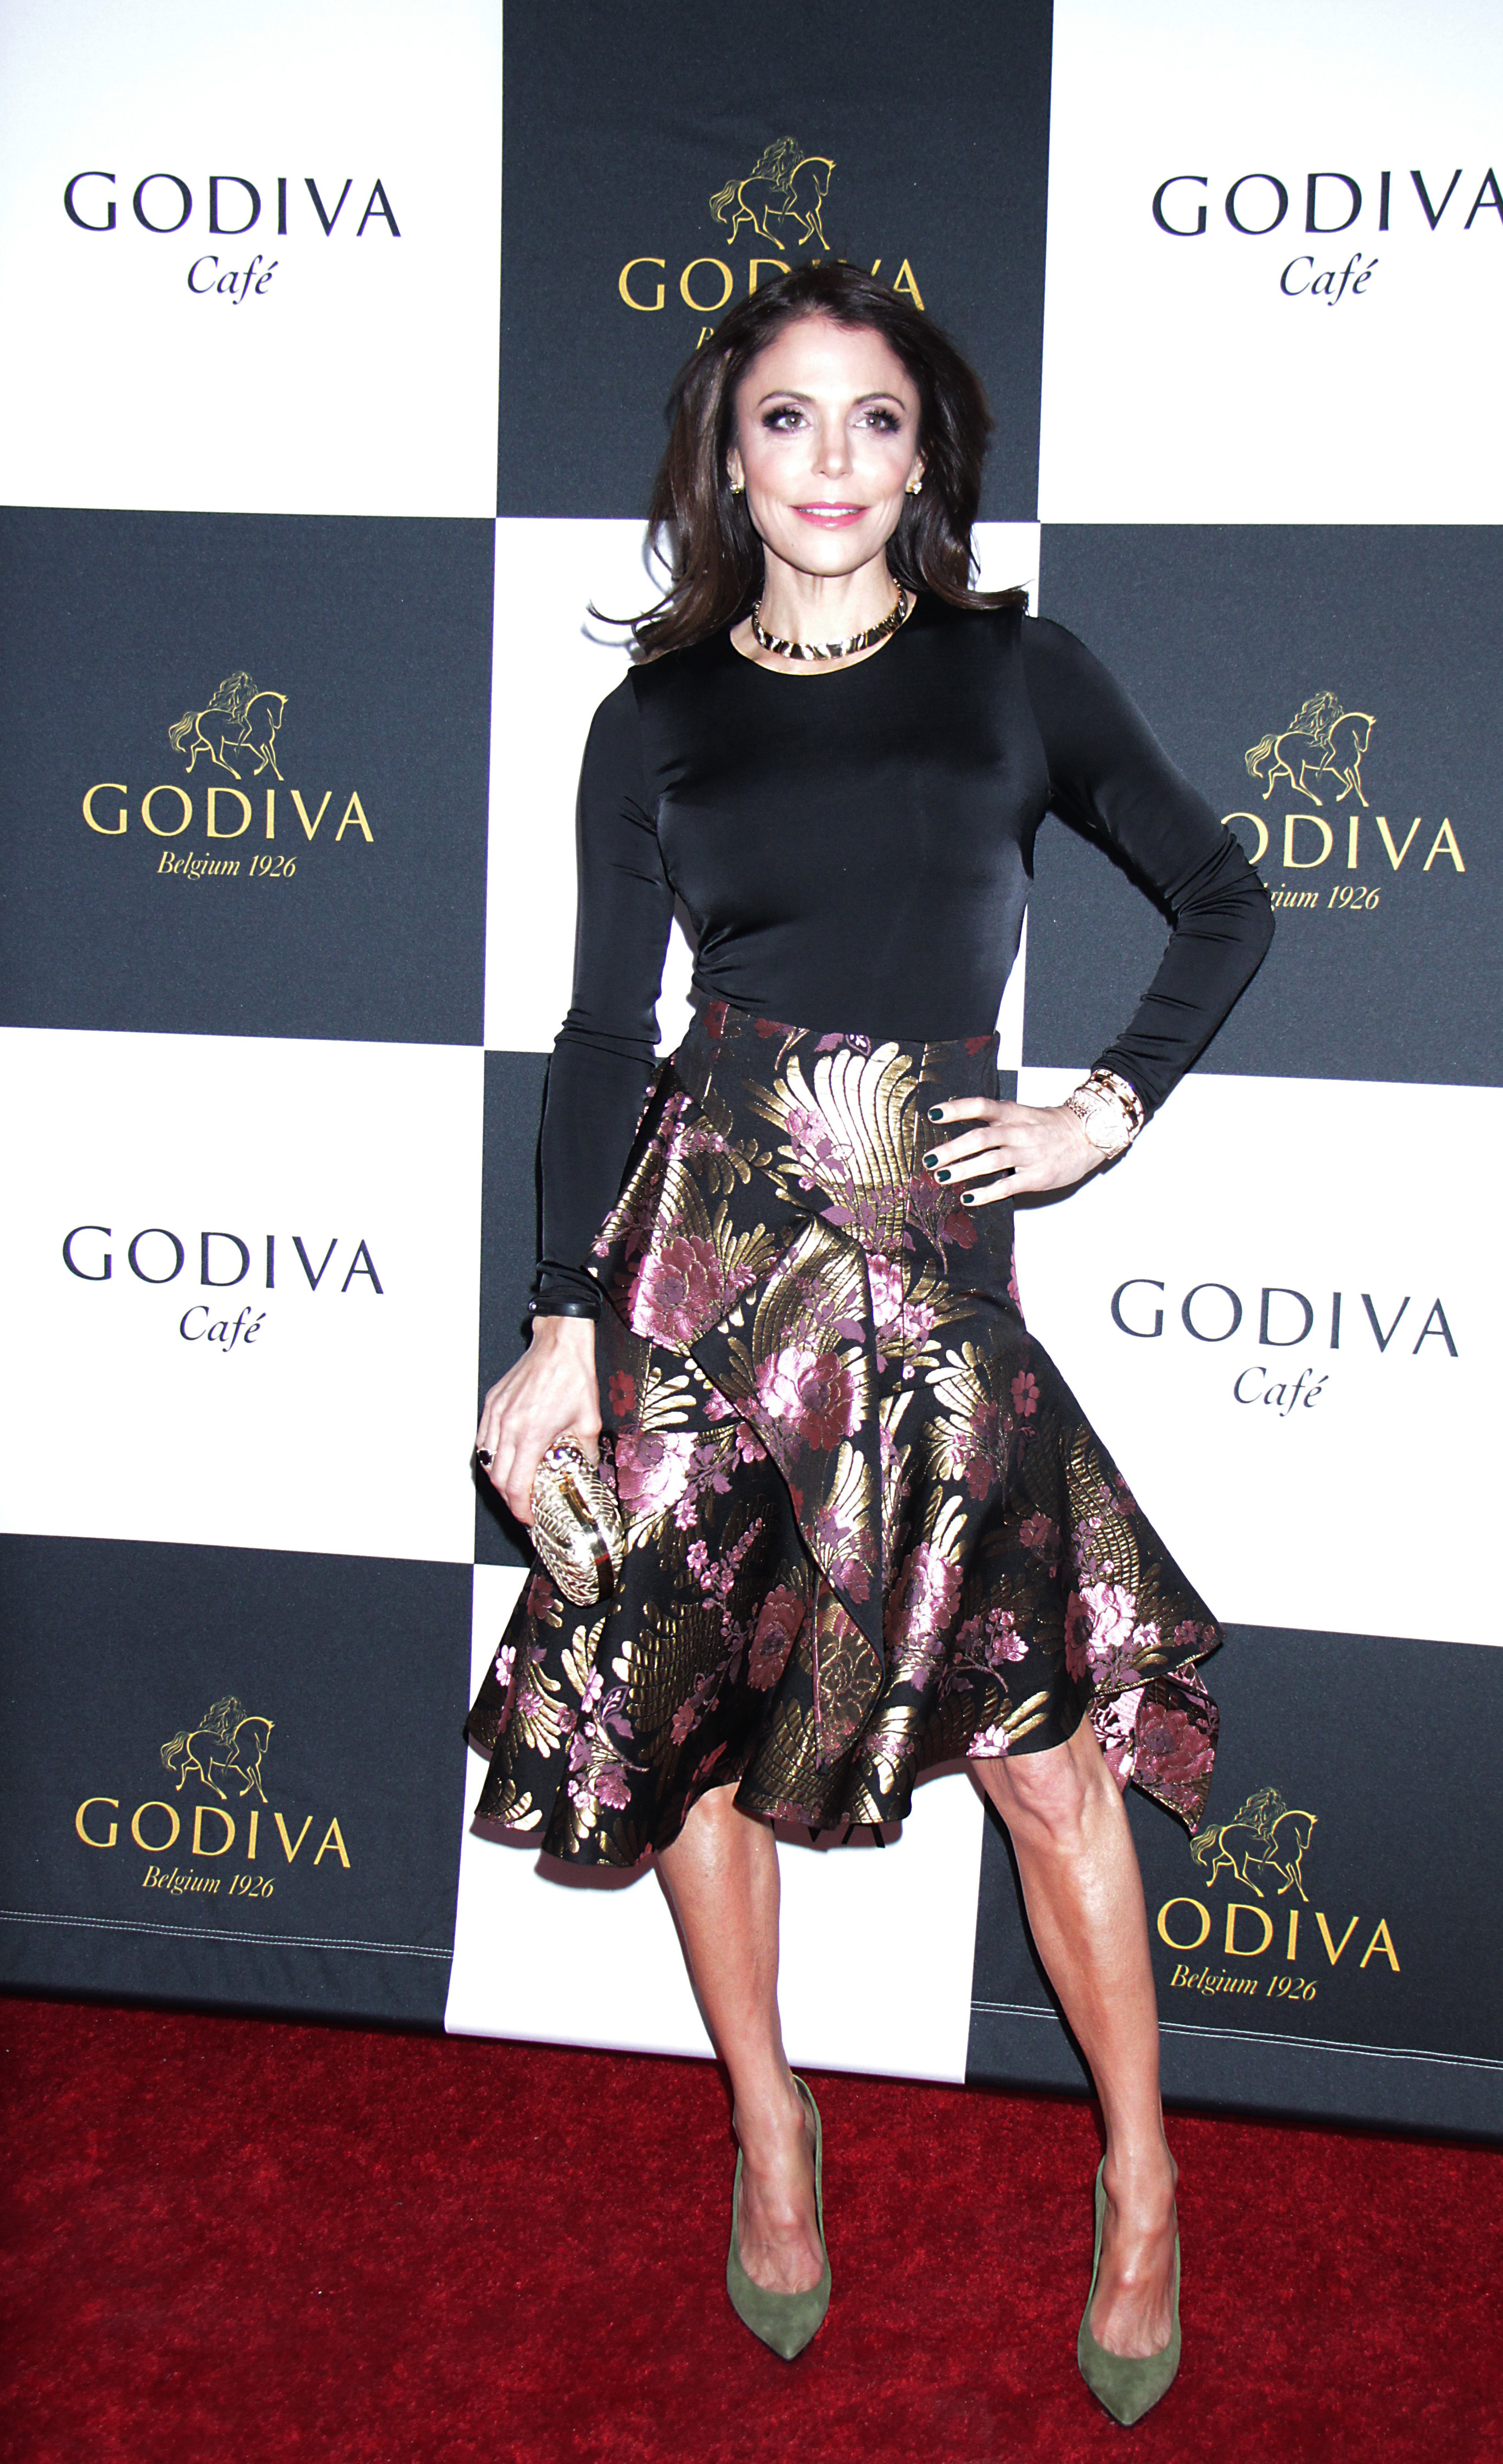 Bethenny Frankel attends the Launch Godiva Cafe in New York City on April17, 2019.